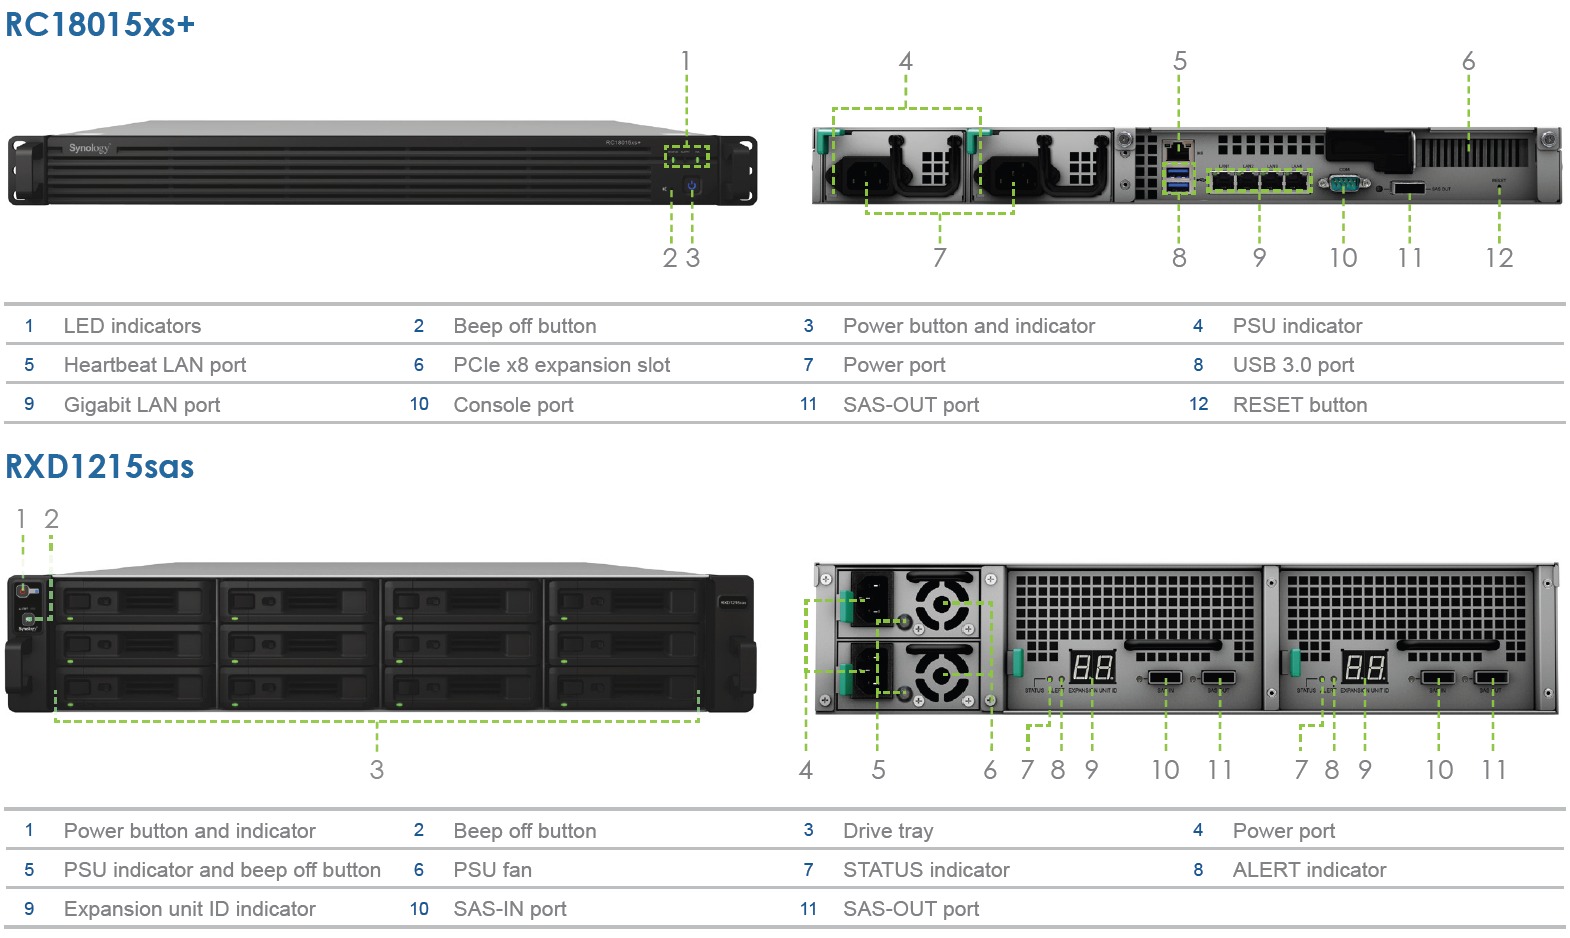 Synology Launches RC18015xs+ / RXD1215sas High-Availability